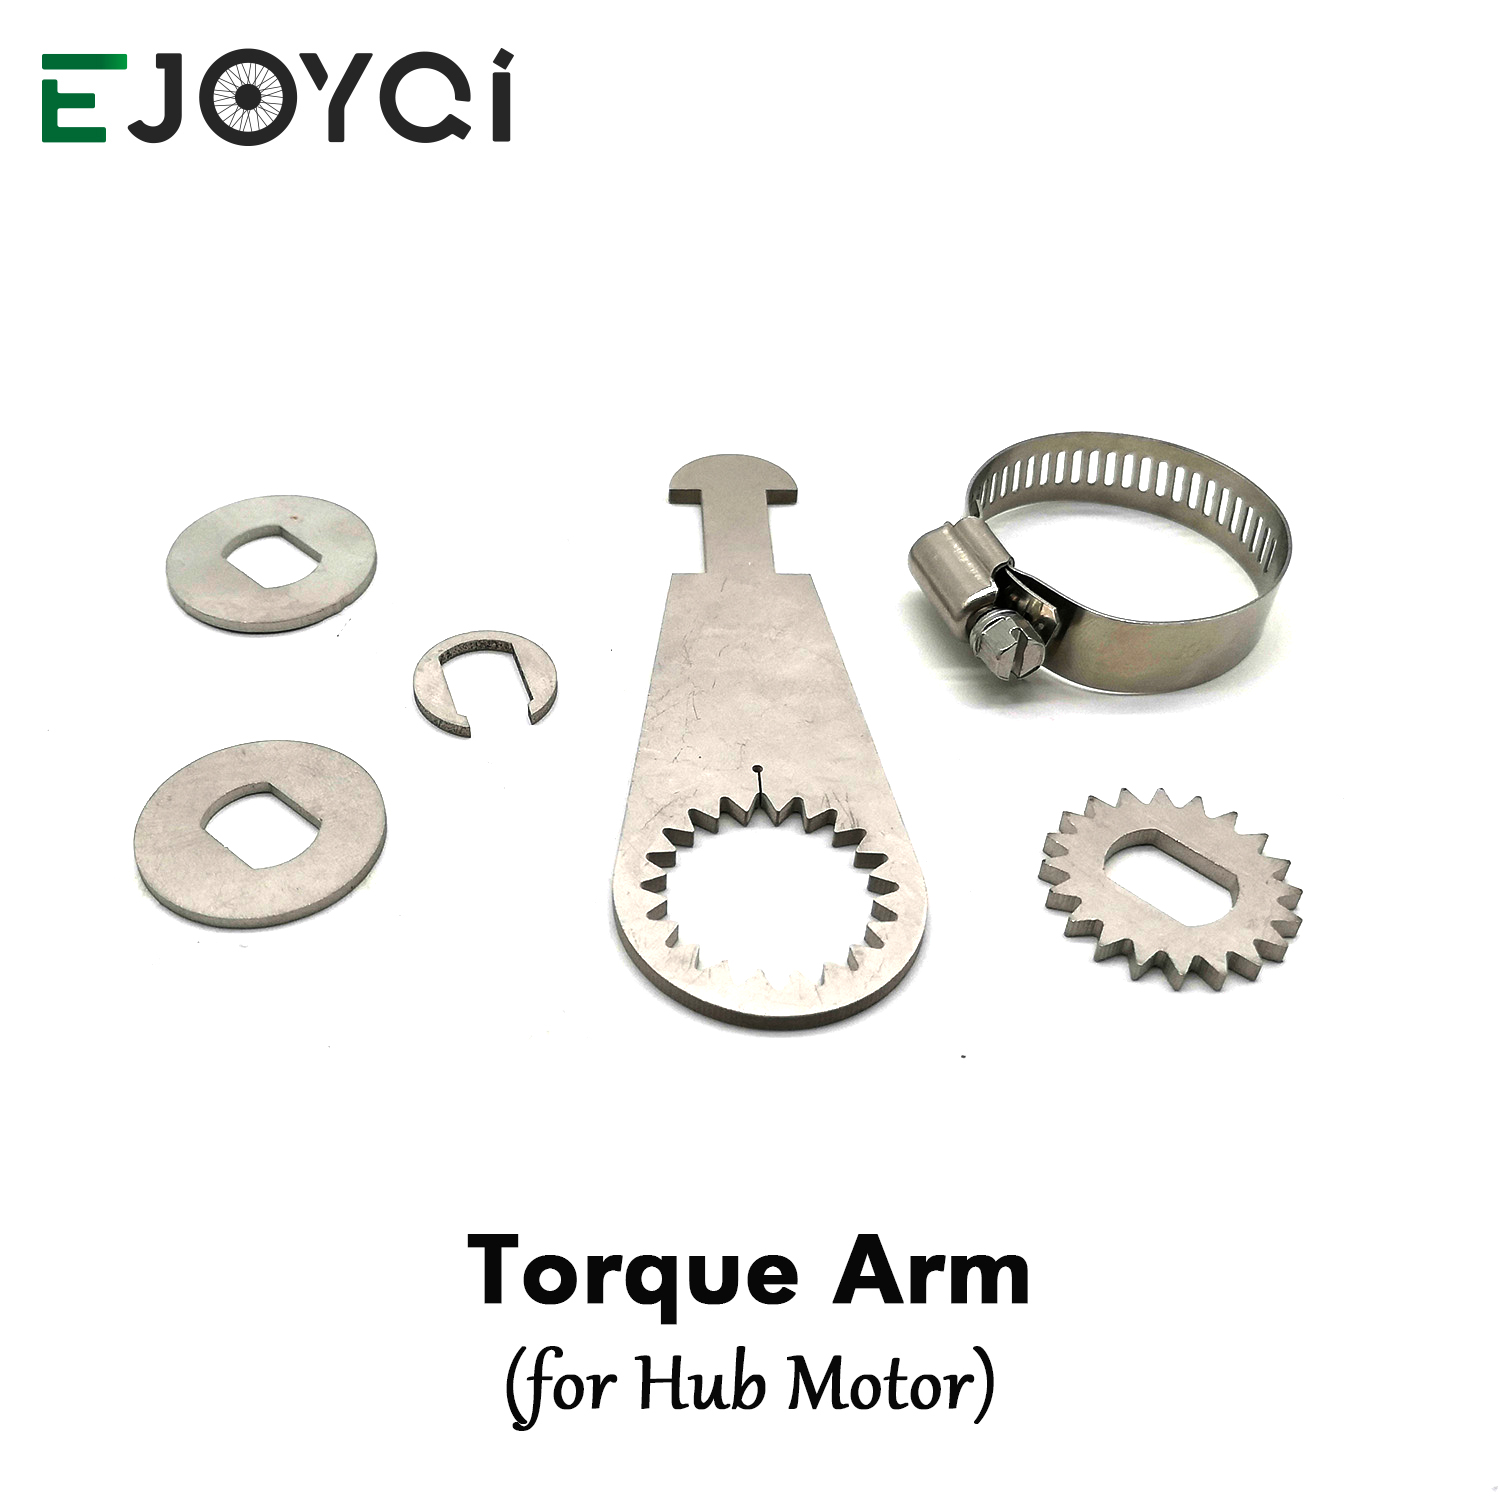 EJOYQI Torque Arm Electric Bicycle Conversion Kit V Brake Torque Arm for Hub Motor